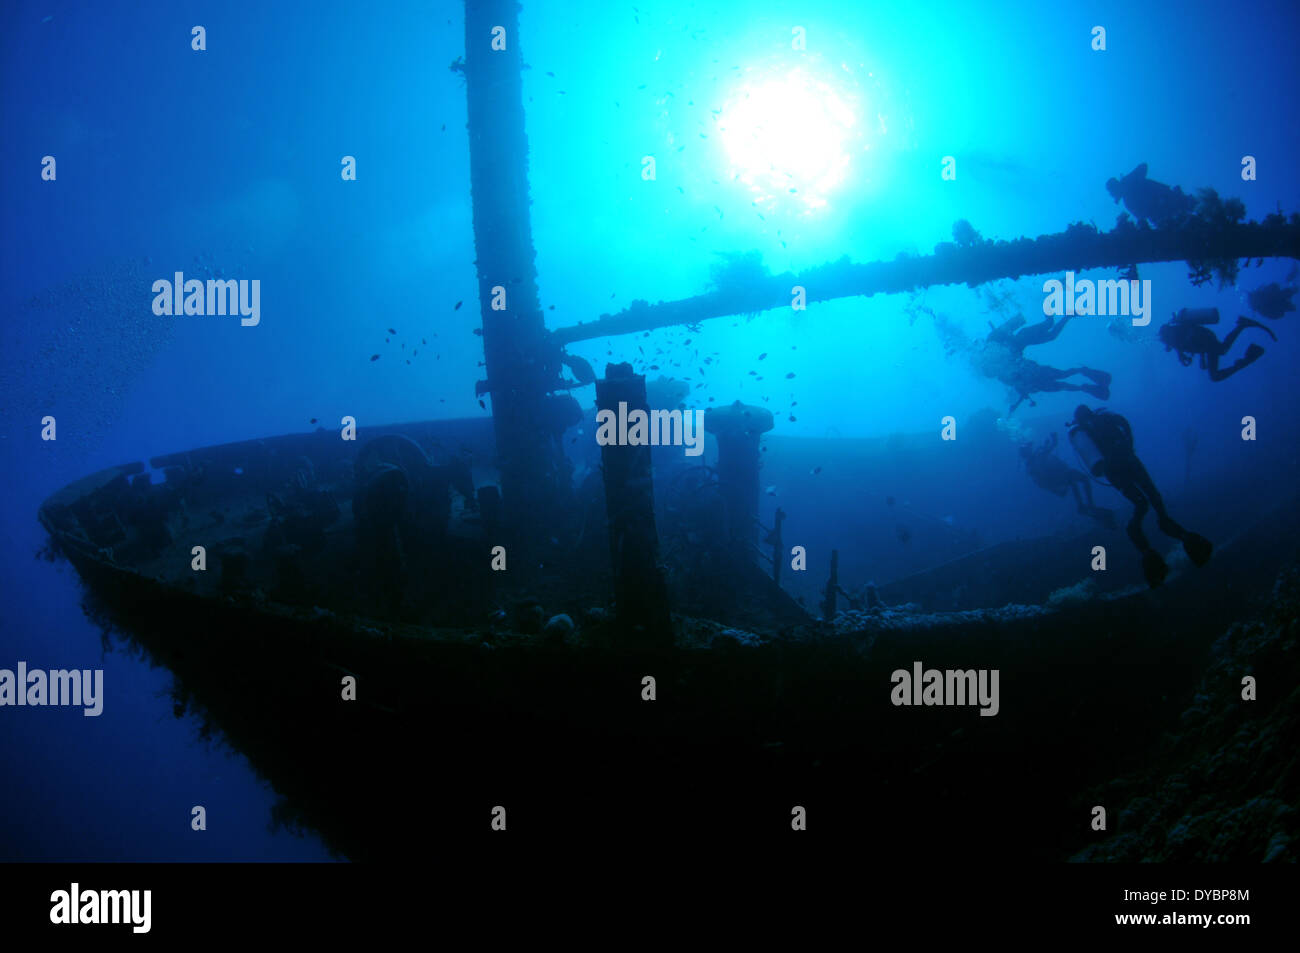 Bow of the Cedar Pride shipwreck and divers, Gulf of Aqaba, Red Sea, Jordan - Stock Image